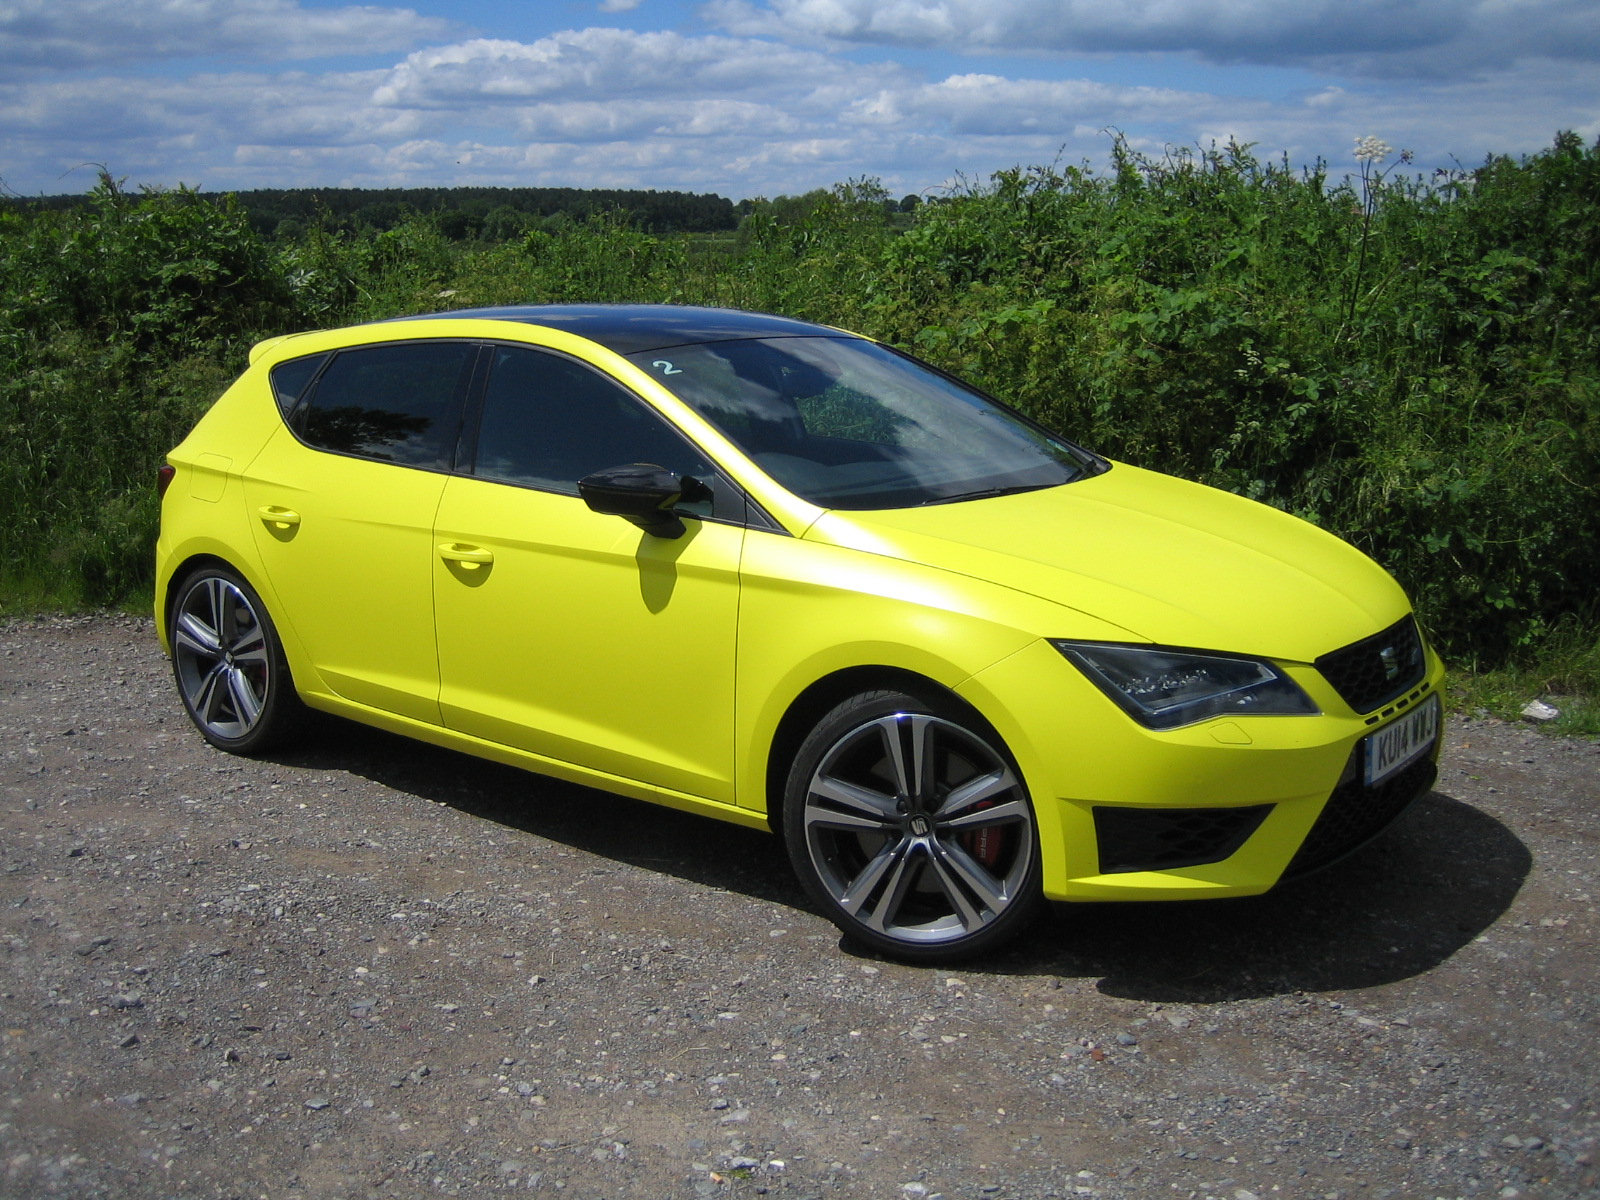 seat leon cupra and cupra 280 road test review. Black Bedroom Furniture Sets. Home Design Ideas